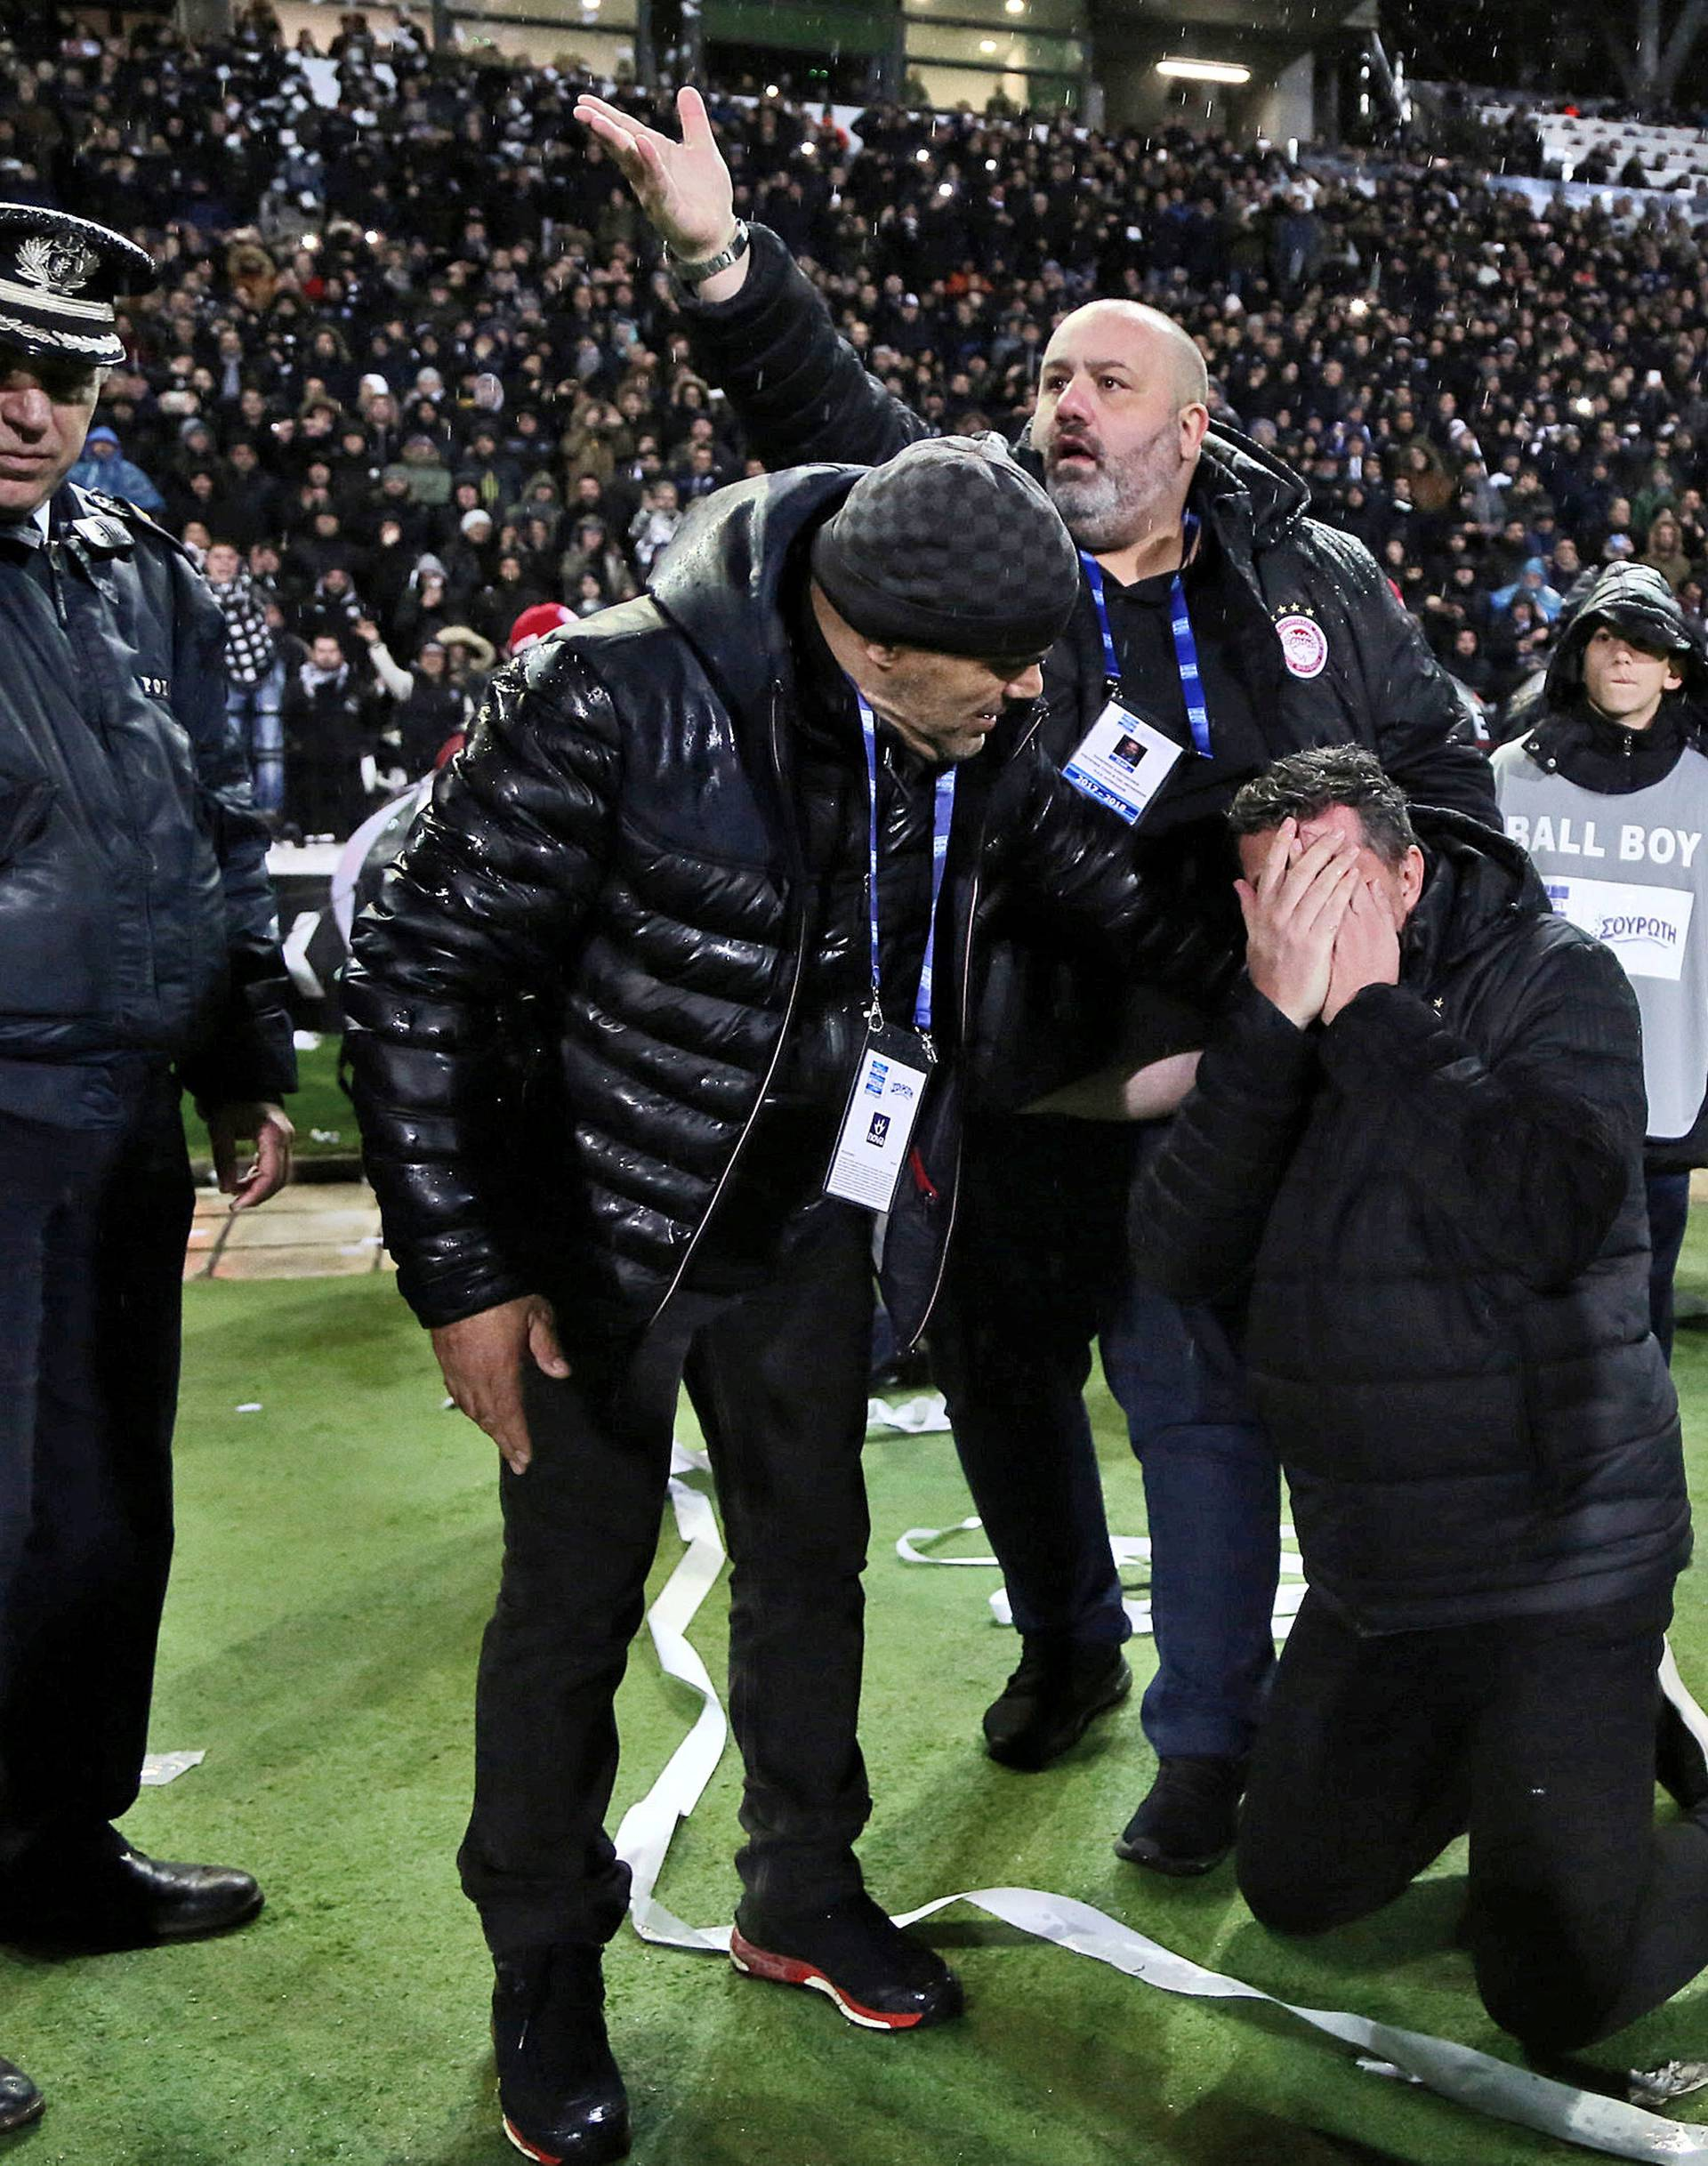 Olympiacos coach Oscar Garcia reacts after his injury during a Greek Super League soccer match between PAOK and Olympiacos in Thessaloniki